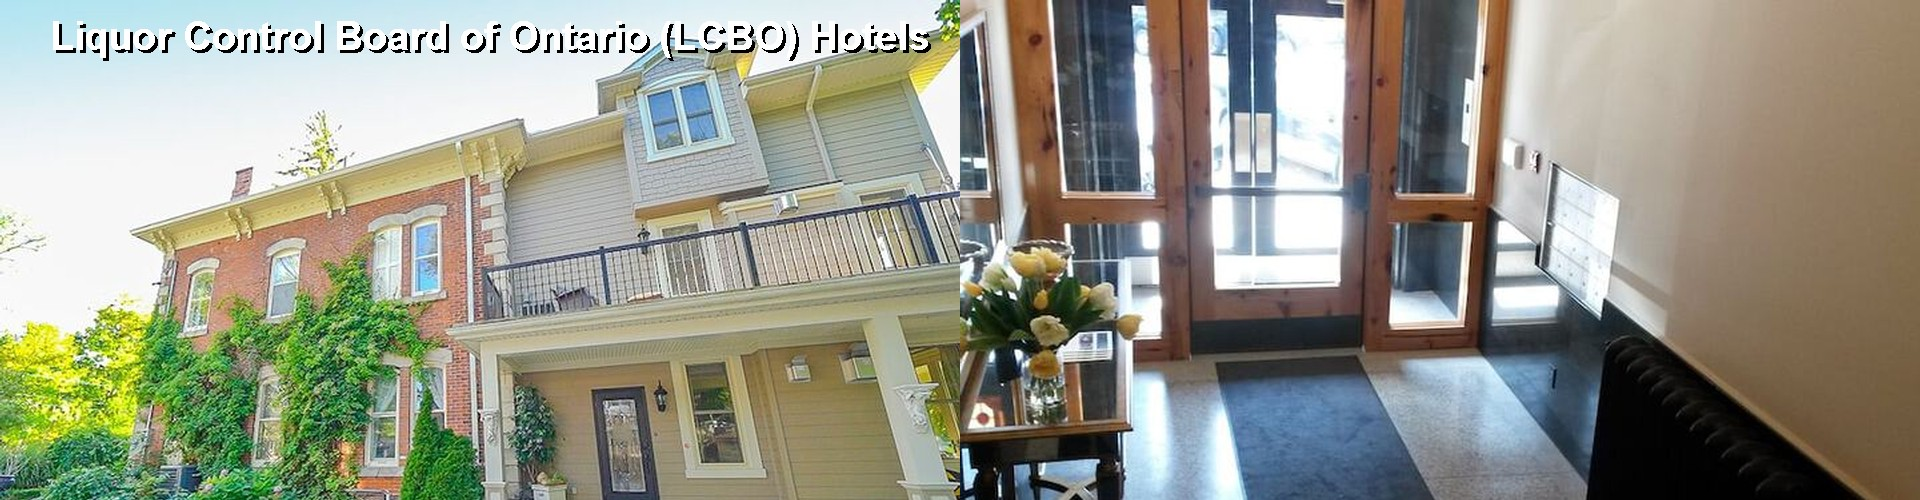 5 Best Hotels near Liquor Control Board of Ontario (LCBO)